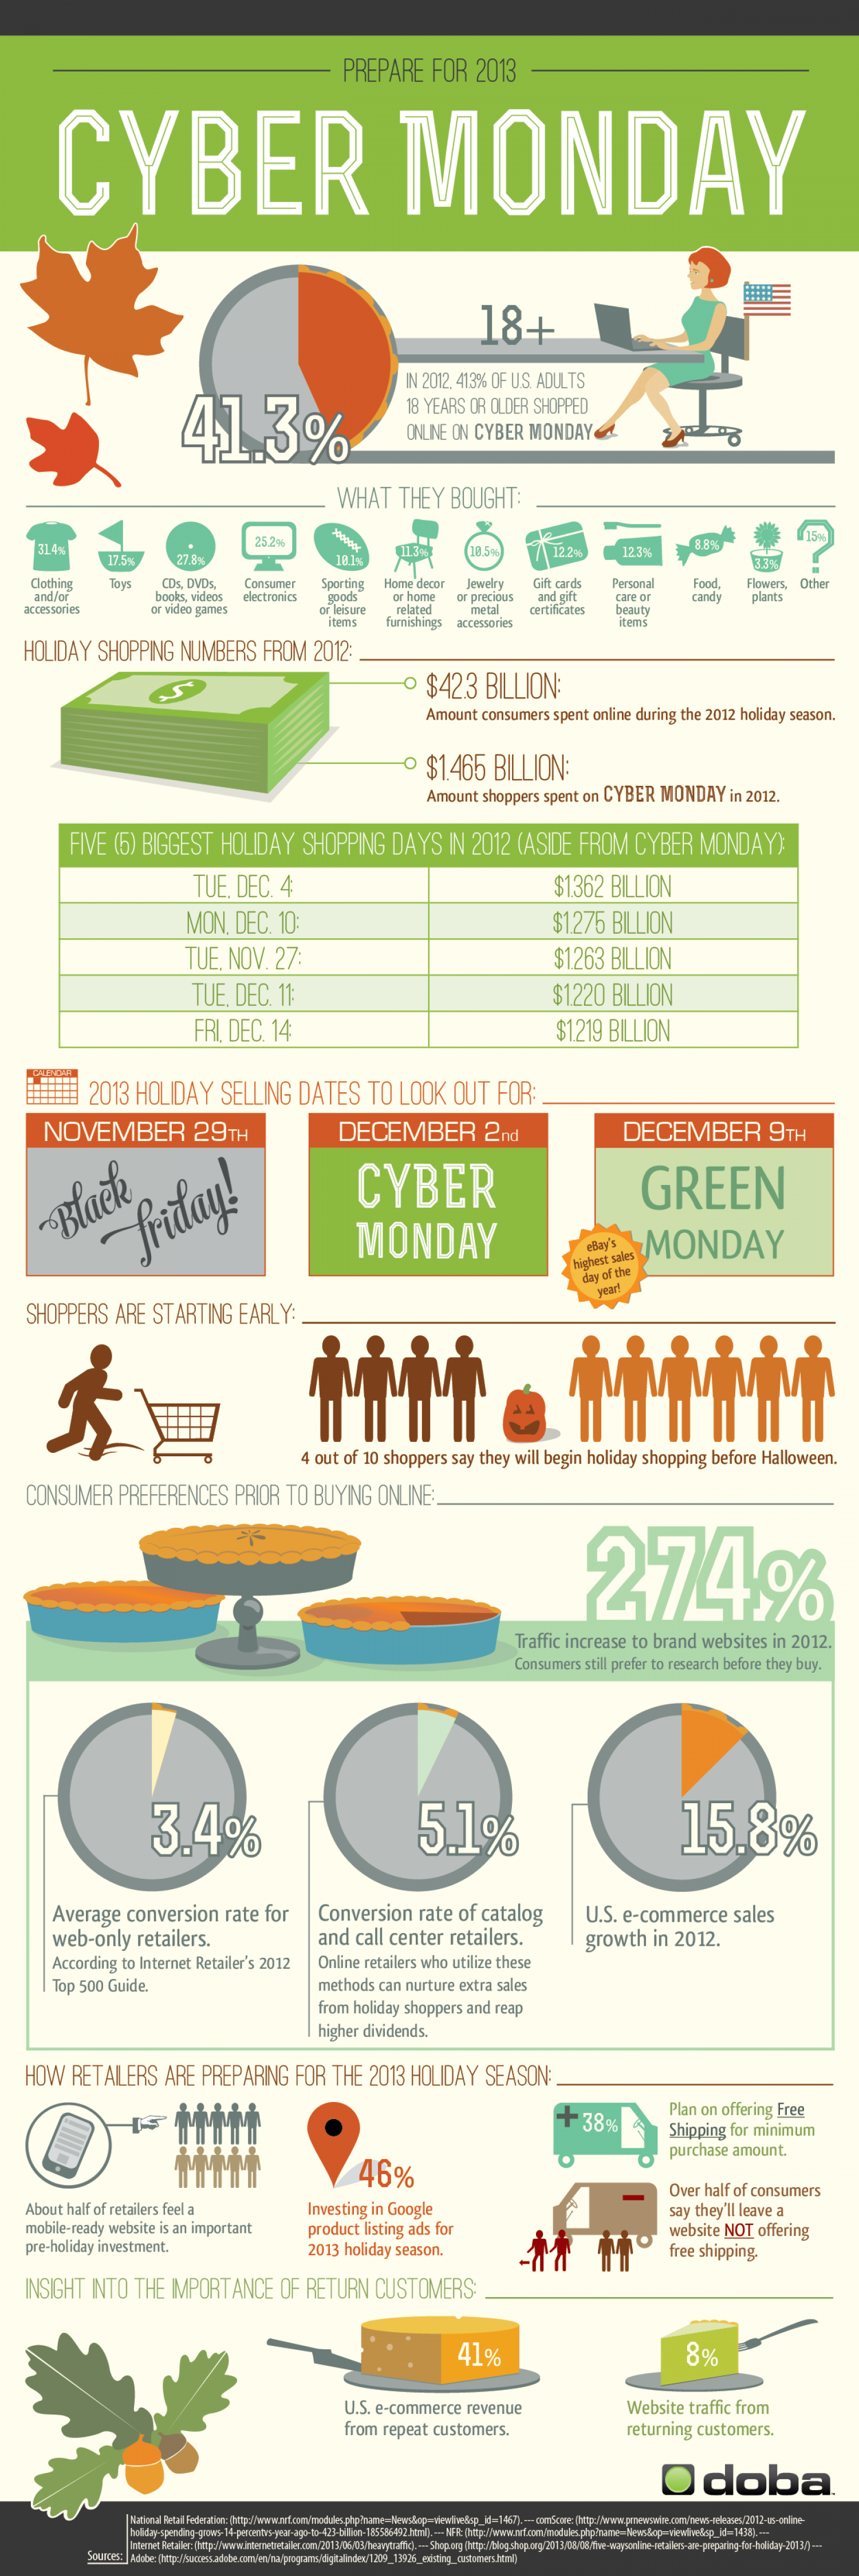 How To Prepare Your Business For Cyber Monday Infographic